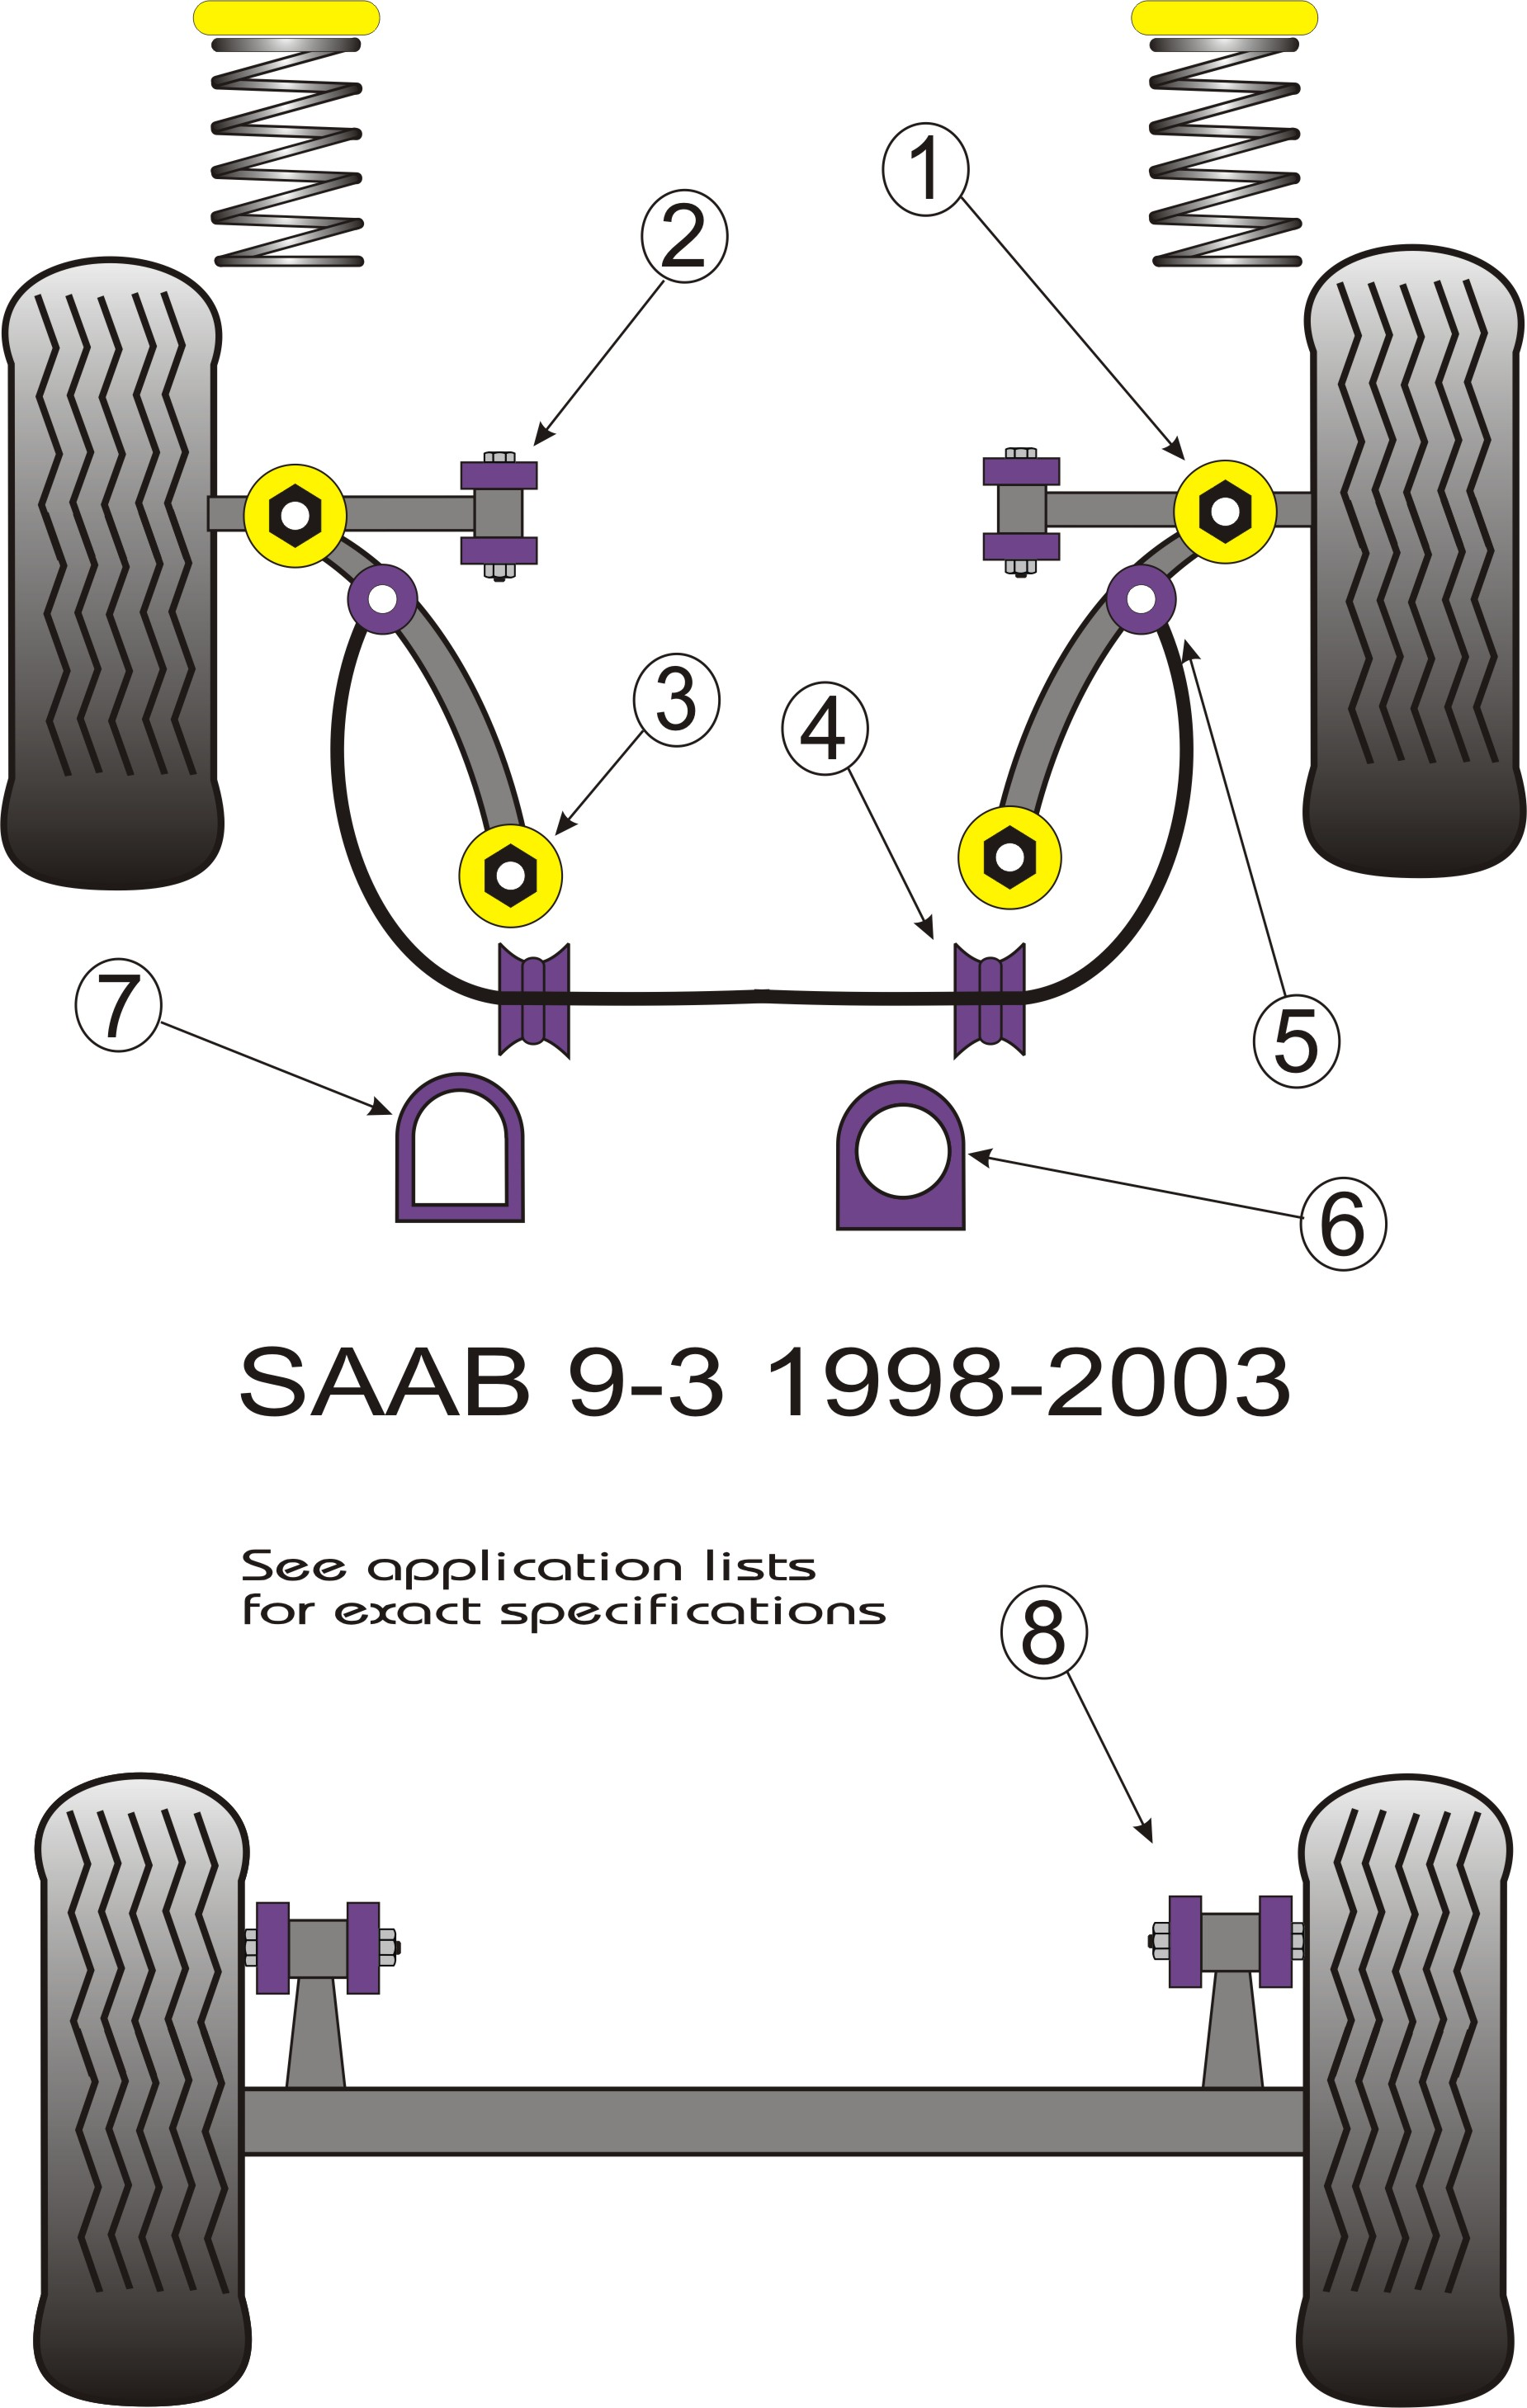 POWERFLEX Saab 9-3 Bushes Australia, Suspension Bushes